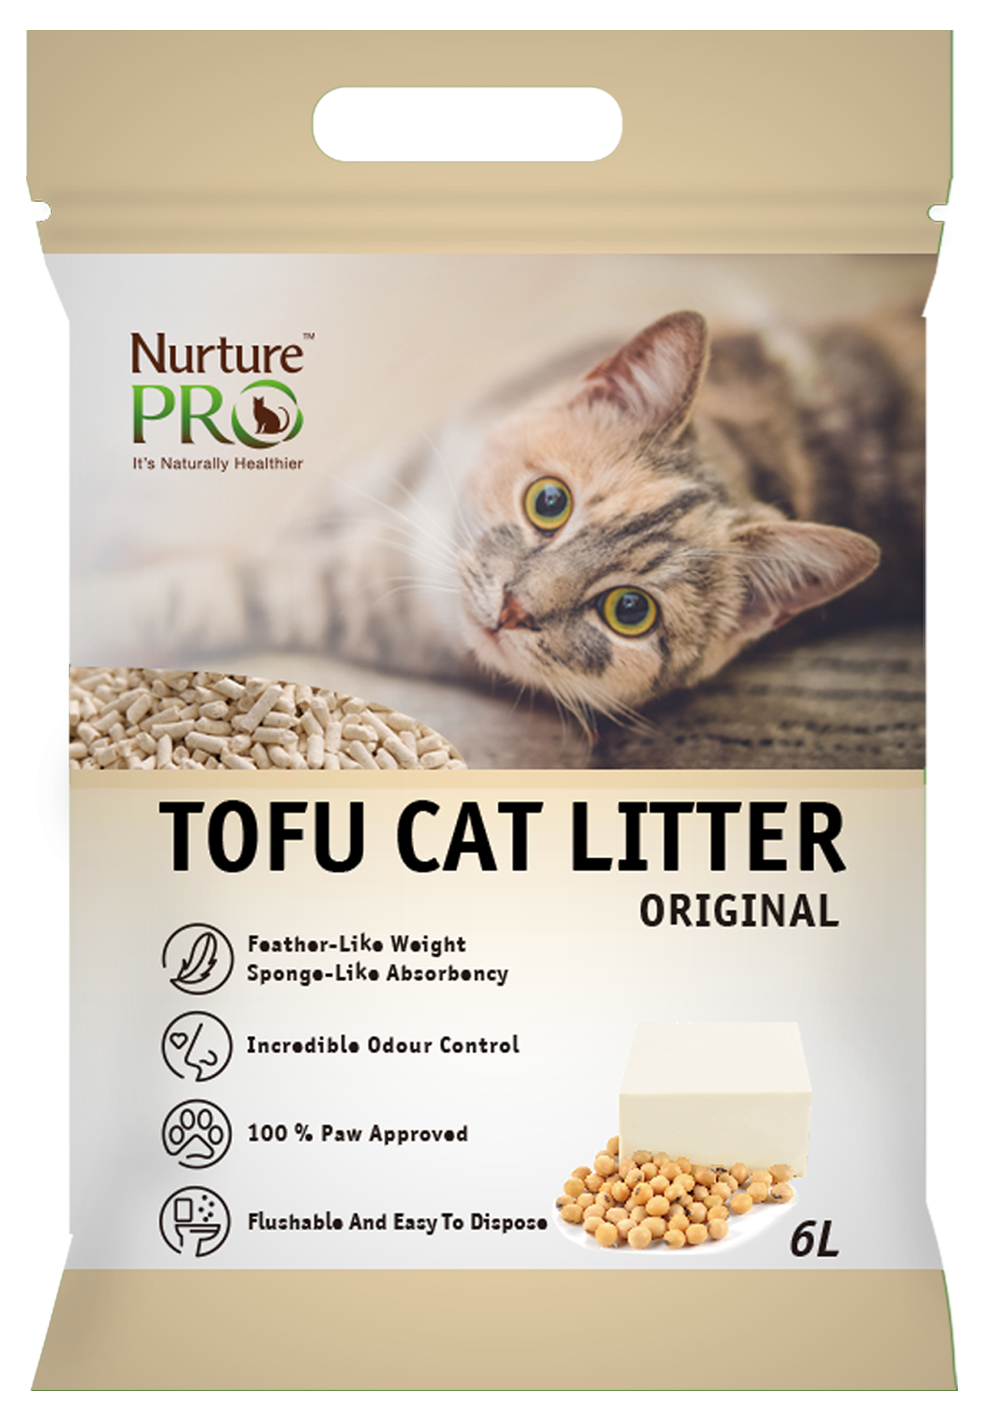 Nurture Pro Tofu Cat Litter - Original